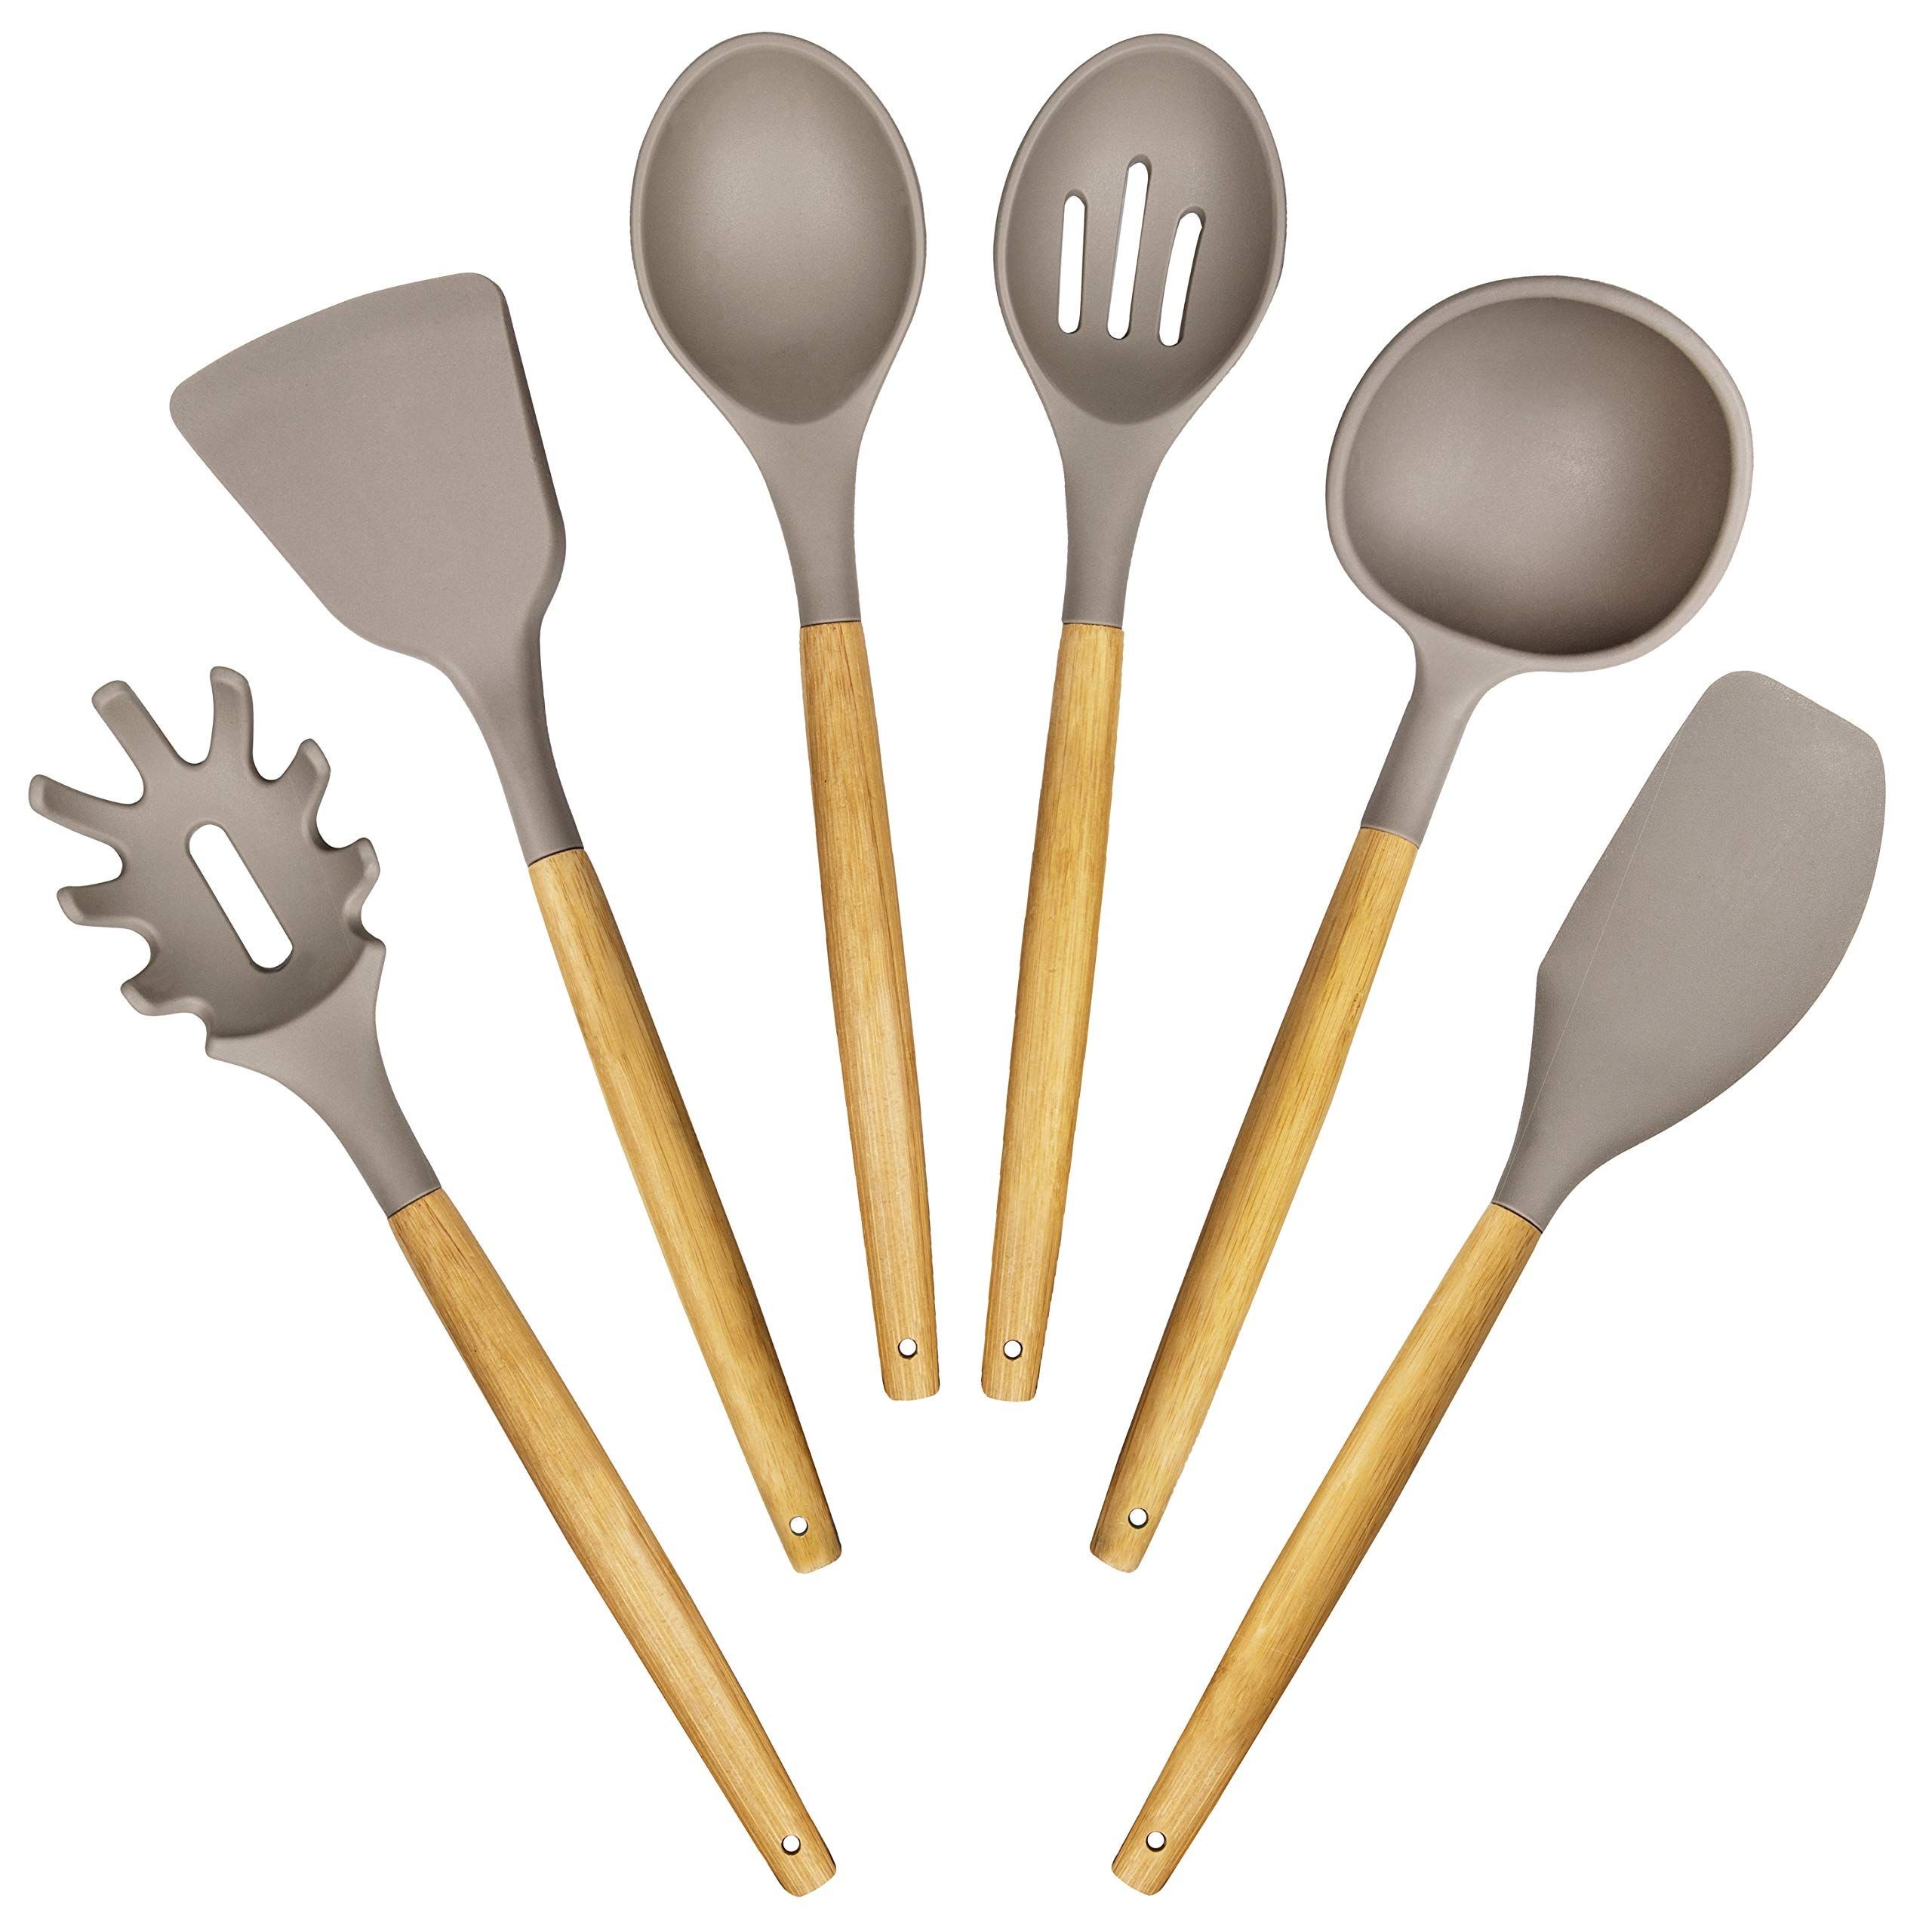 6 Pieces Bamboo Wooden Spoons /& Spatulas and 1 Holder as Bonus Heat Resistant for Non Stick Cookware Kitchen Cooking Utensils Set